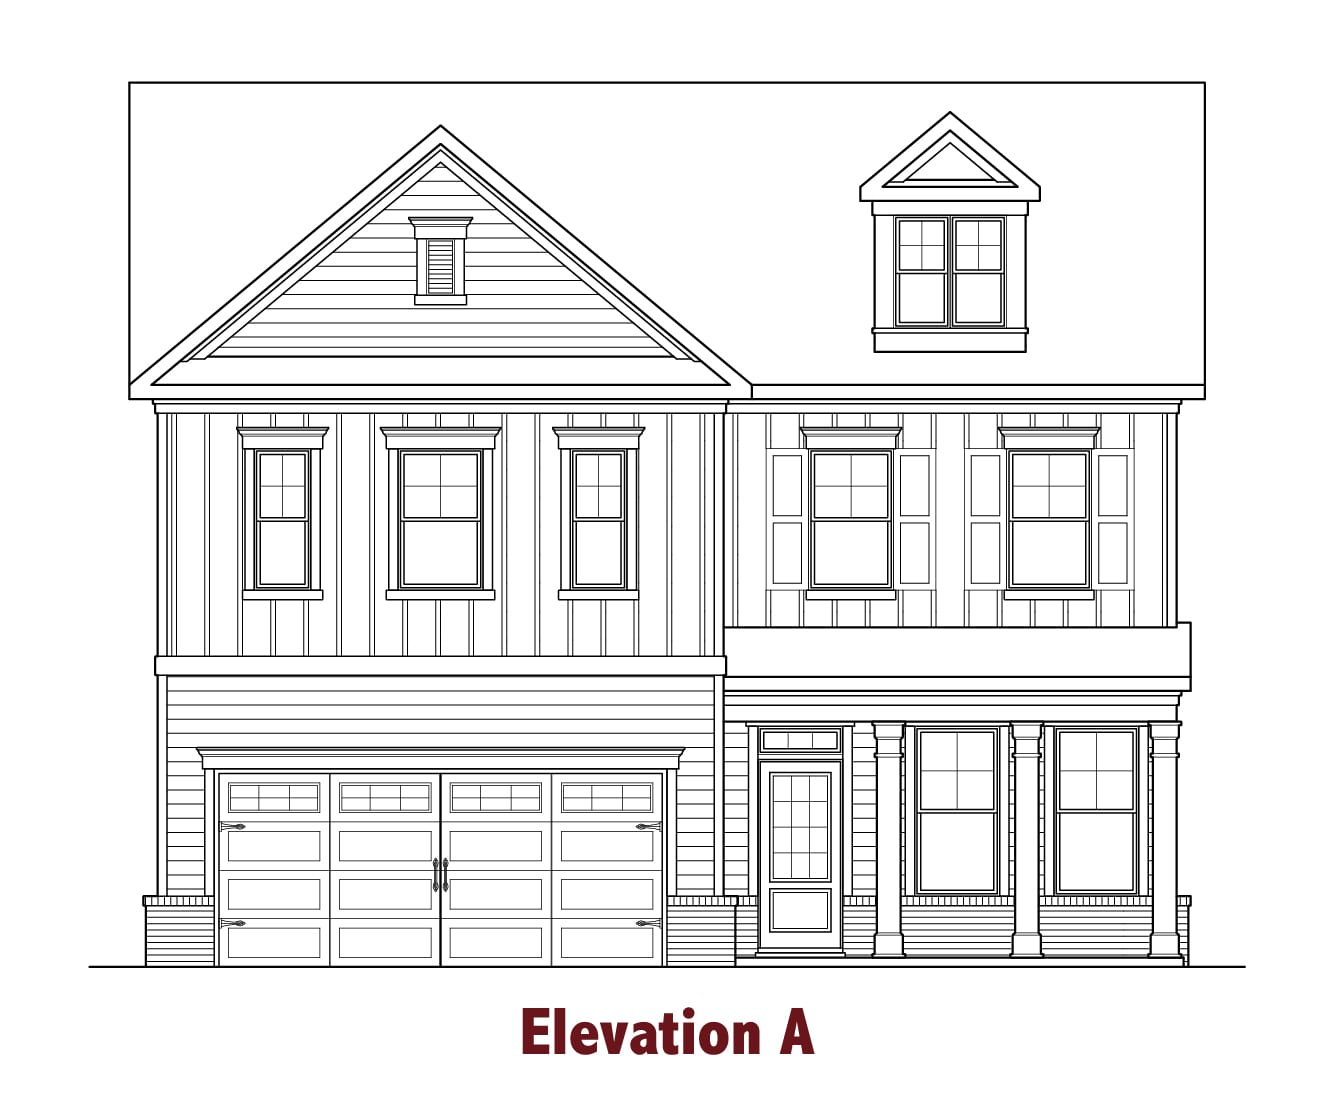 Peachtree elevations Image